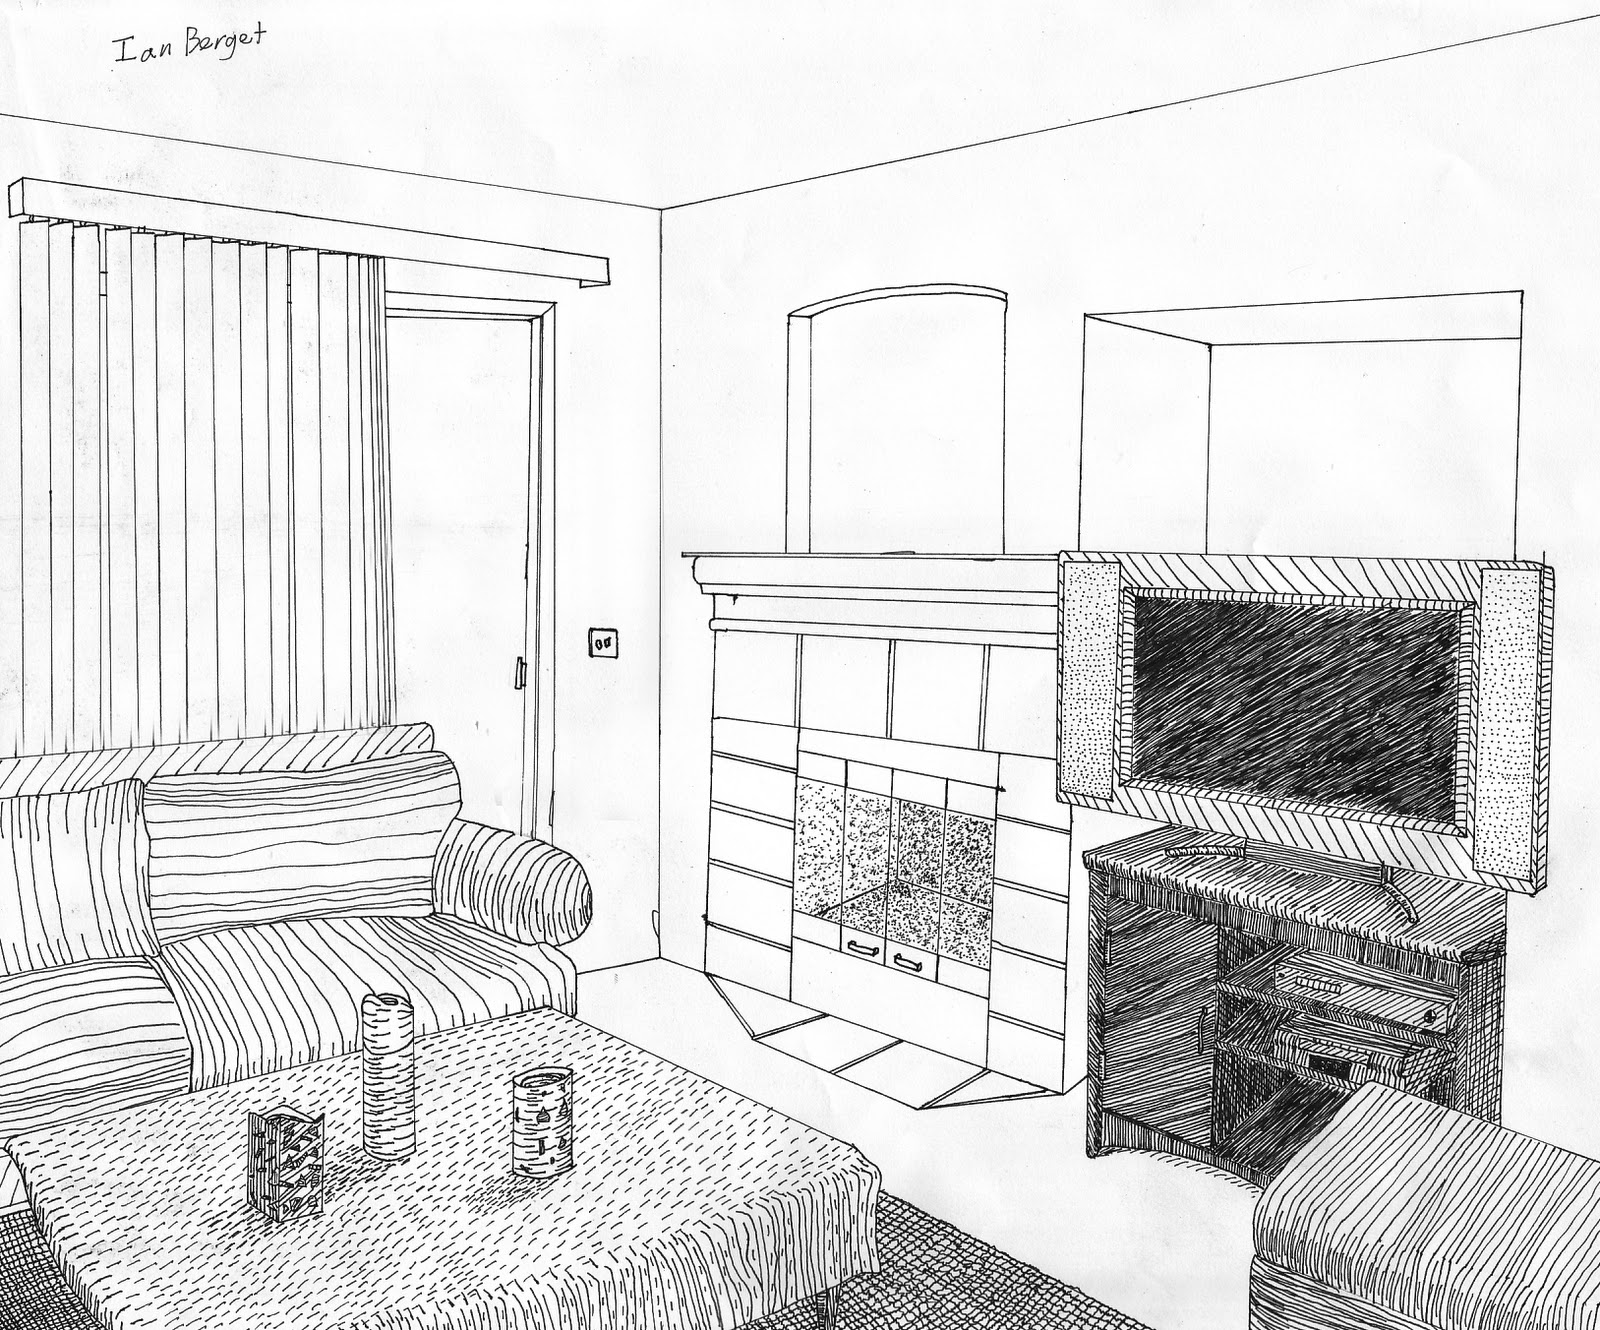 Ian 39 s art blog drawing pen drawings - How to draw a living room in perspective ...